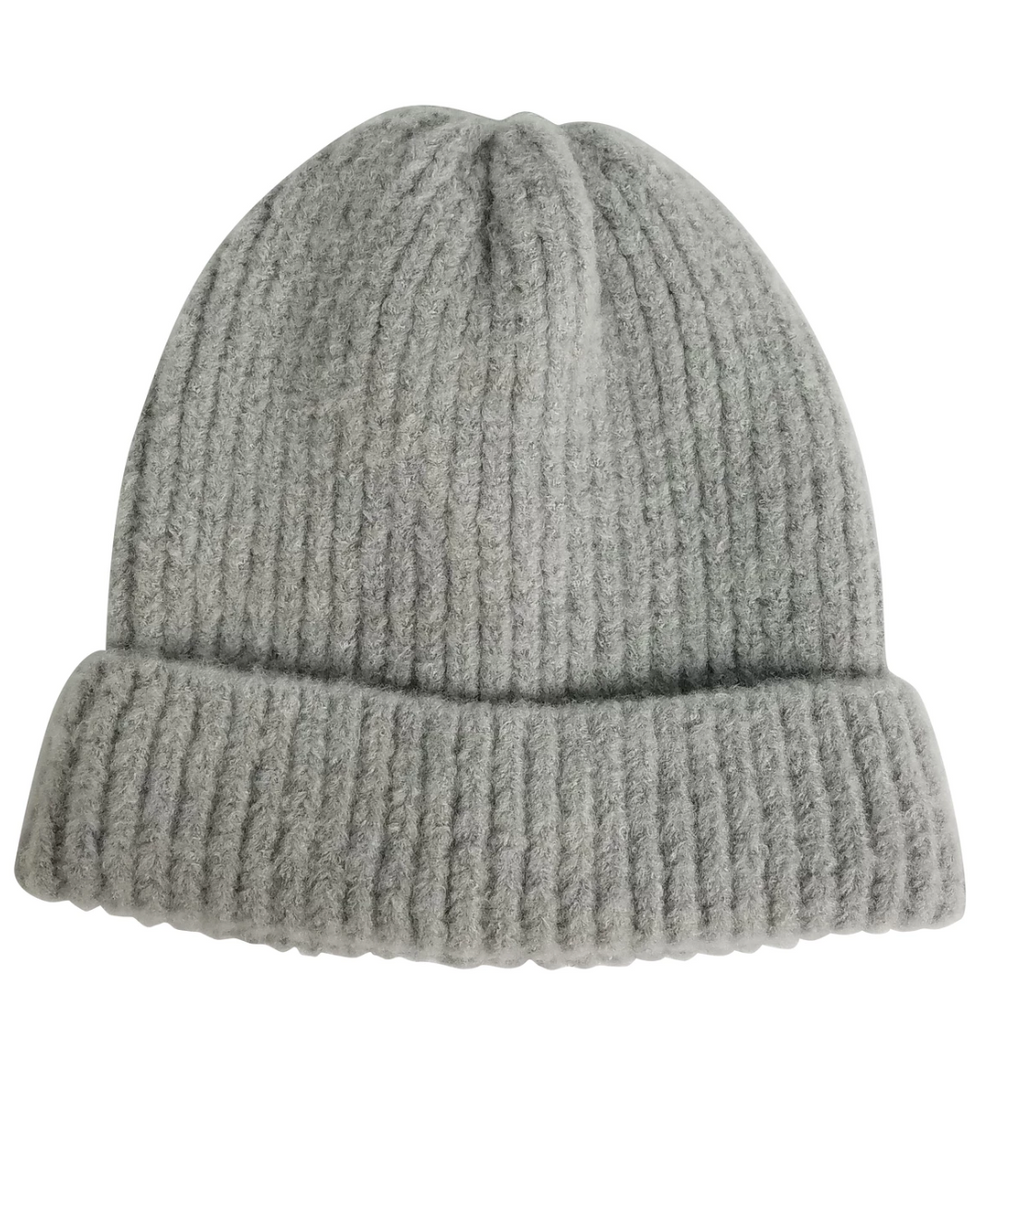 Lodge Beanie - Grey